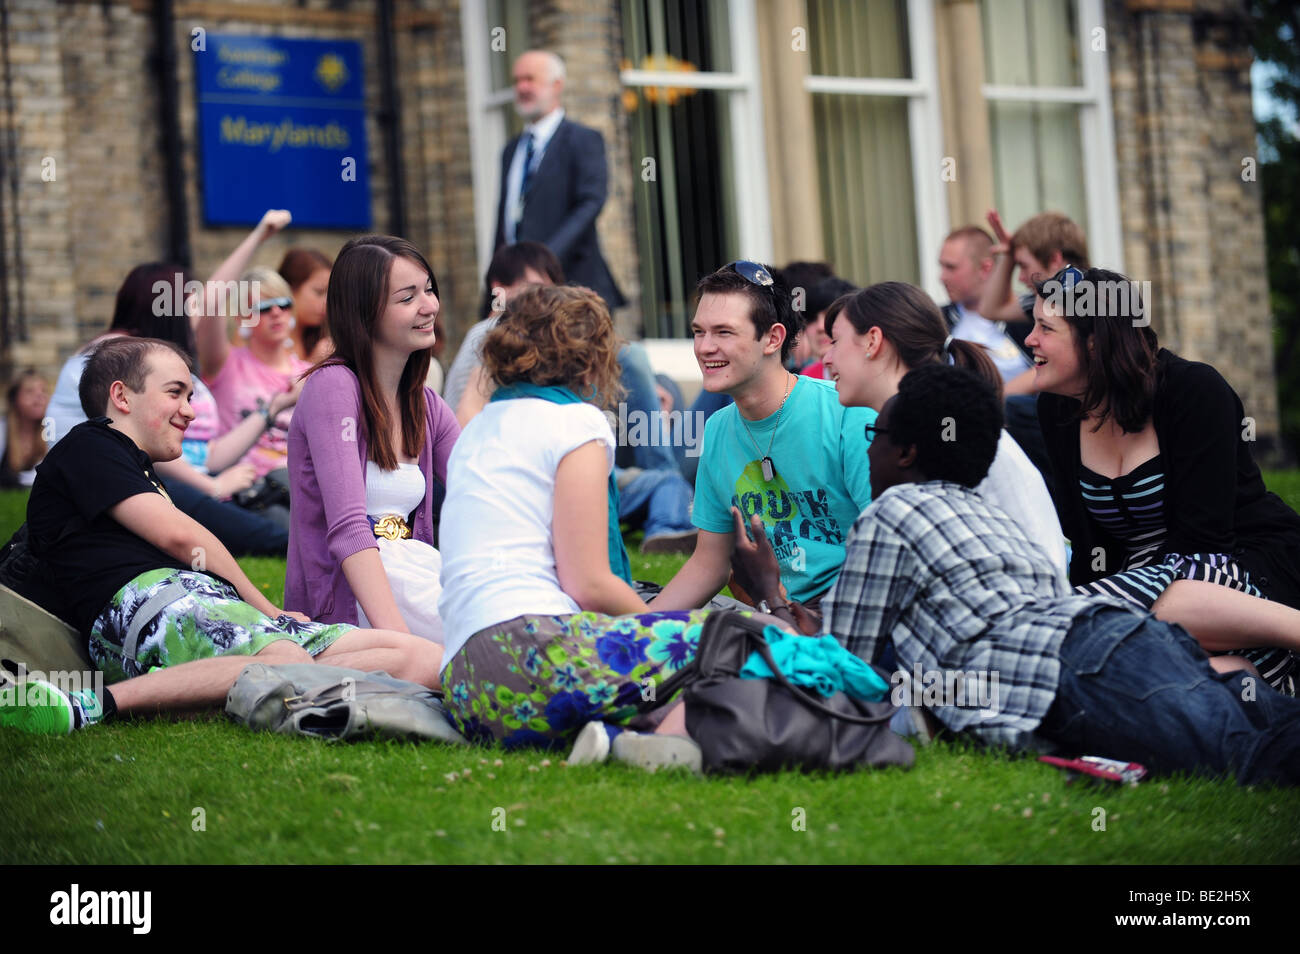 Students relax on grass during a break at a sixth form further education college - Stock Image